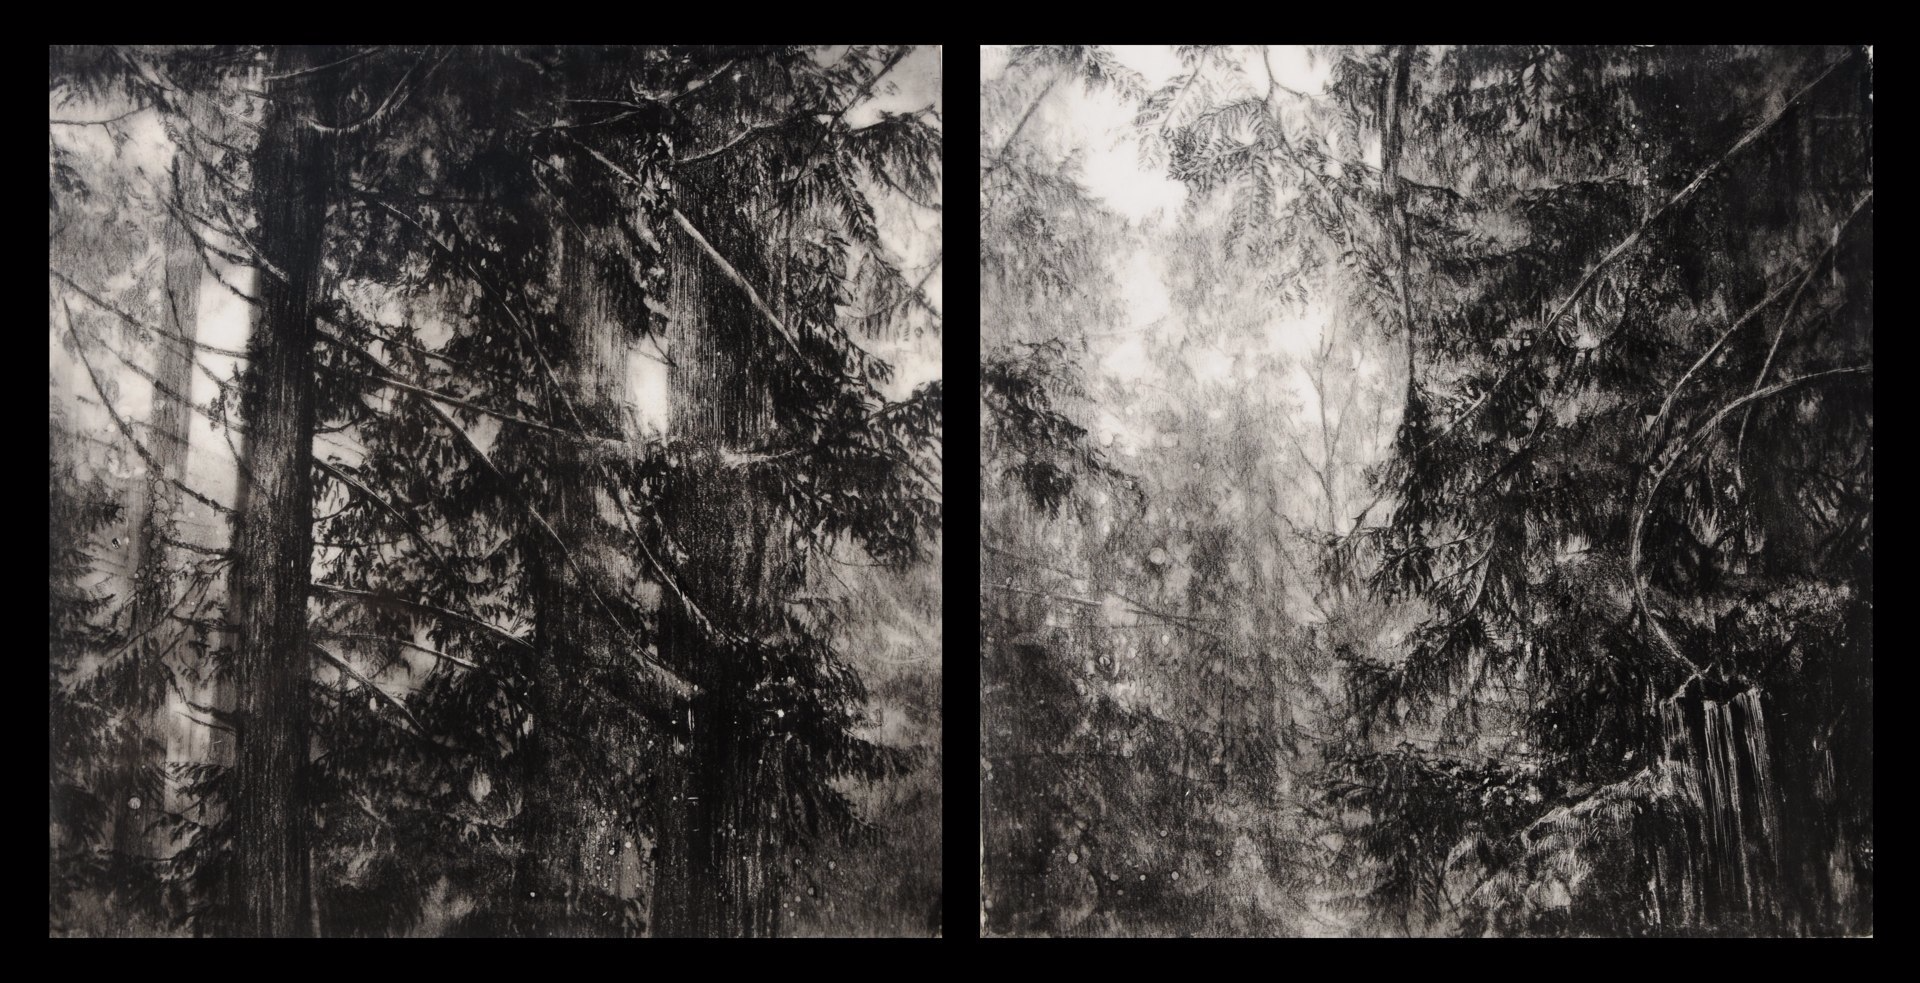 Hypatia's Woods II , 2011. Encaustic and charcoal on board. Diptych: two 10 x 10 inch panels. Private collection.